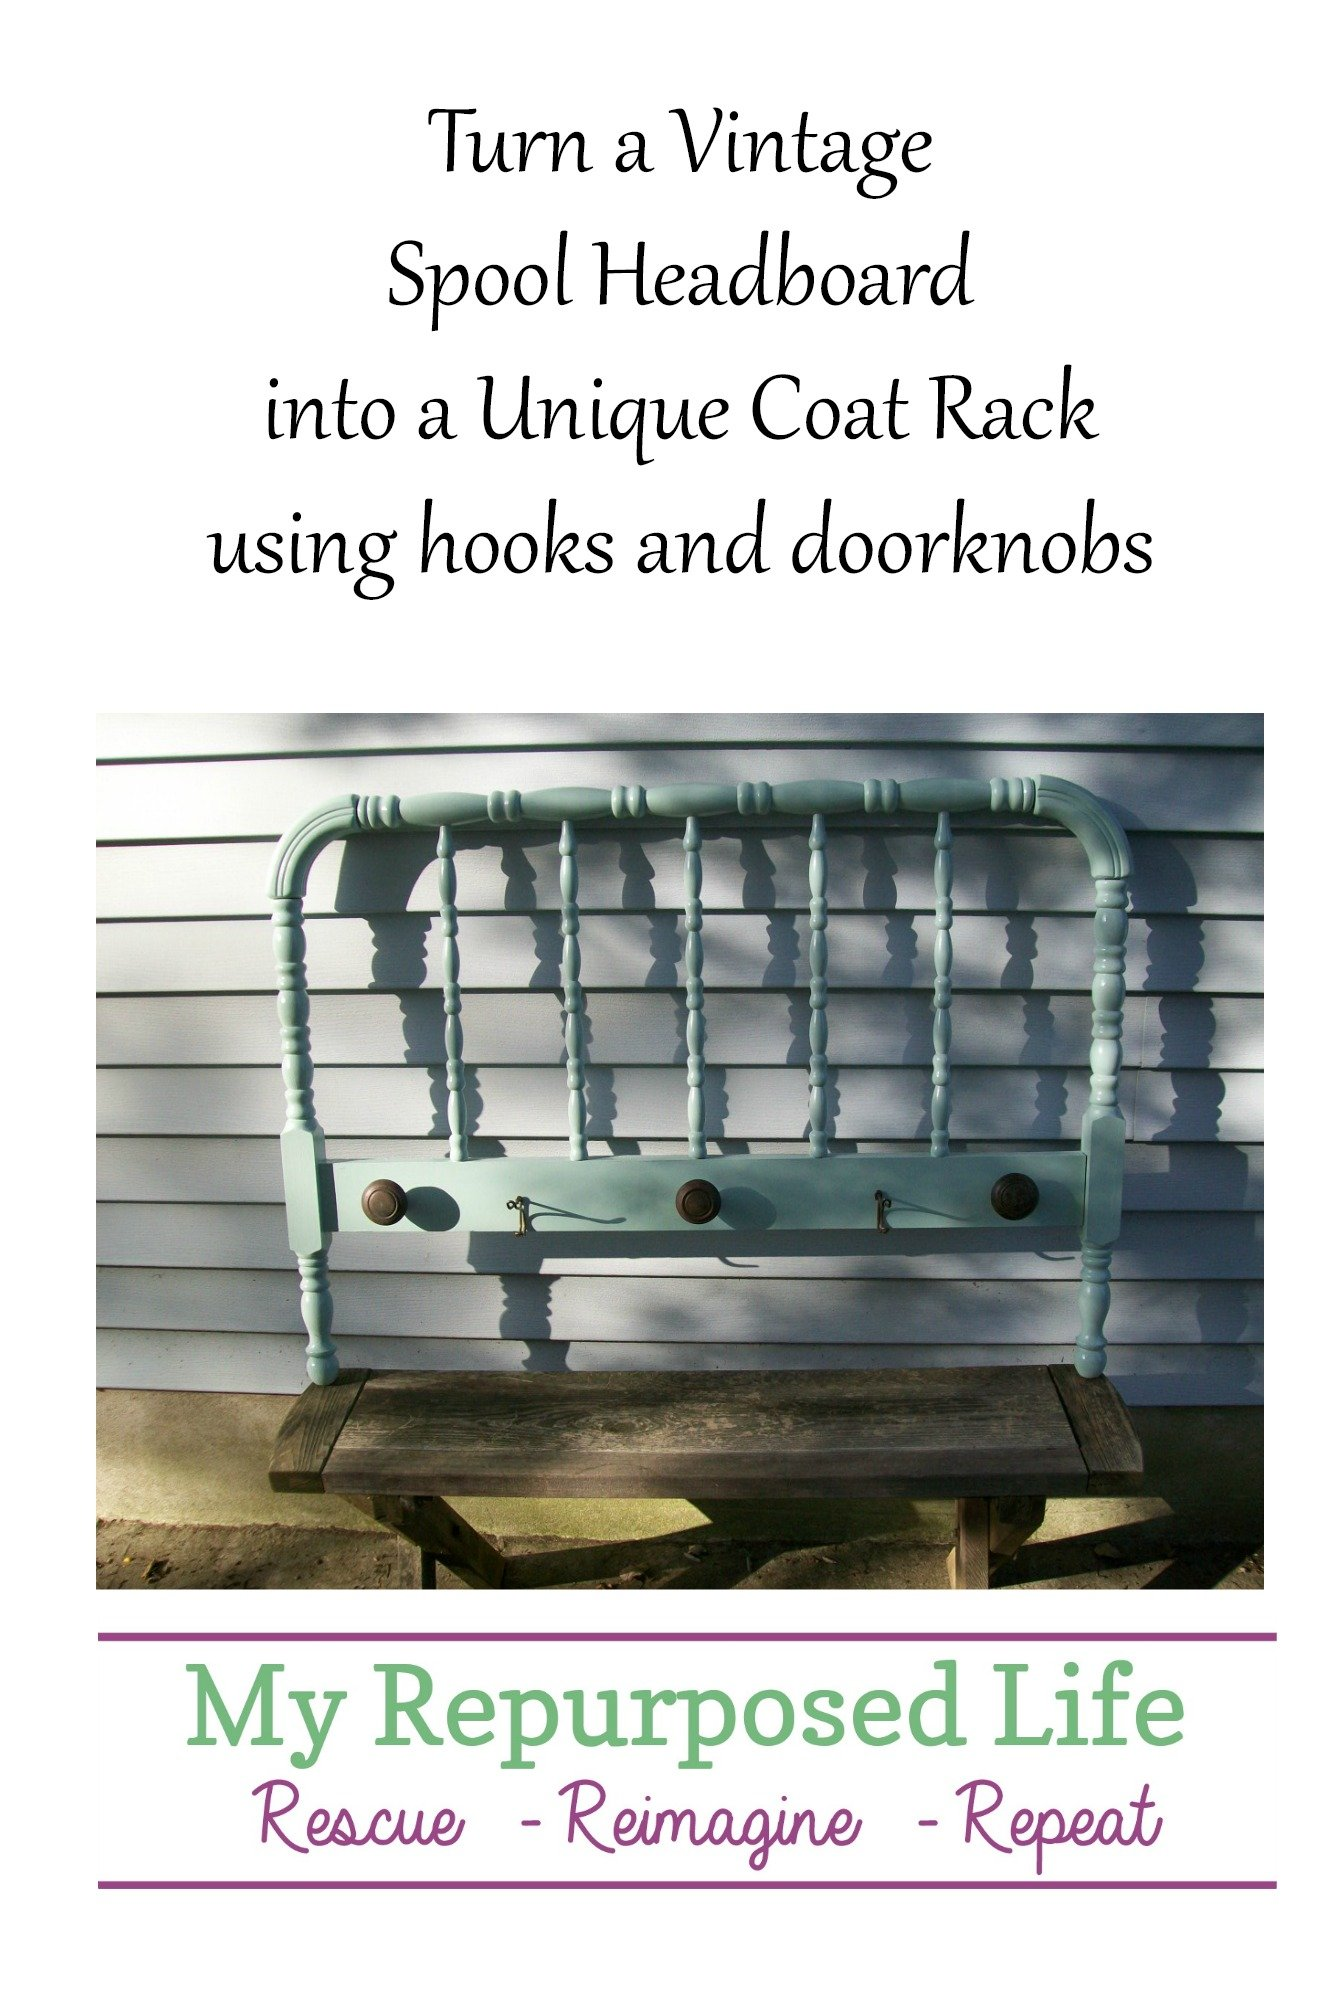 How to make a headboard coat rack using an antique spool bed. Add paint, vintage doorknobs and hooks and you'll be more organized in no time. #MyRepurposedLife #repurposed #headboard #coatrack #antique #doorknobs via @repurposedlife